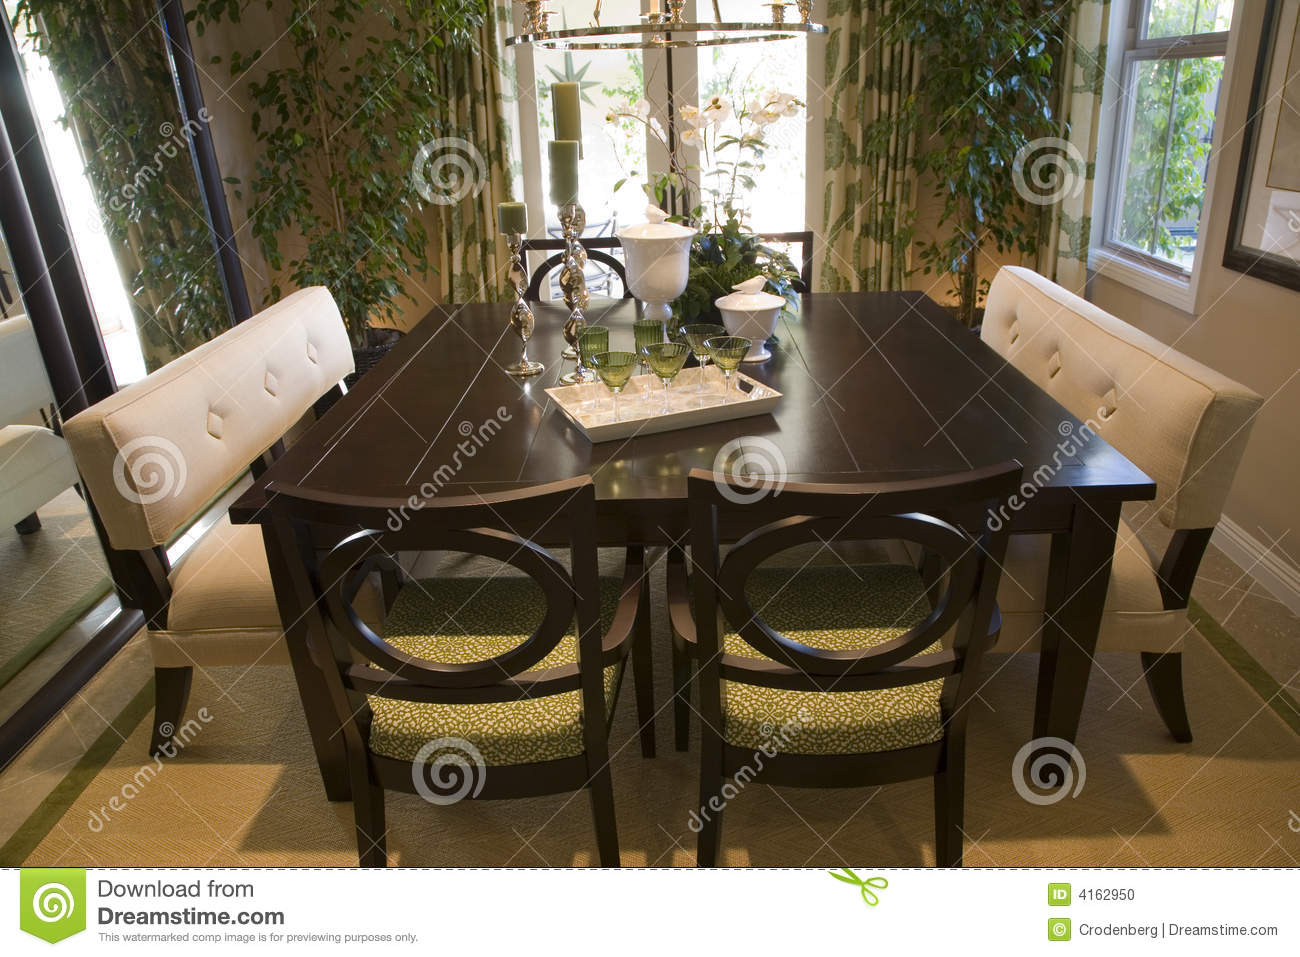 dining table with luxury decor stock photo image 4162950. Black Bedroom Furniture Sets. Home Design Ideas